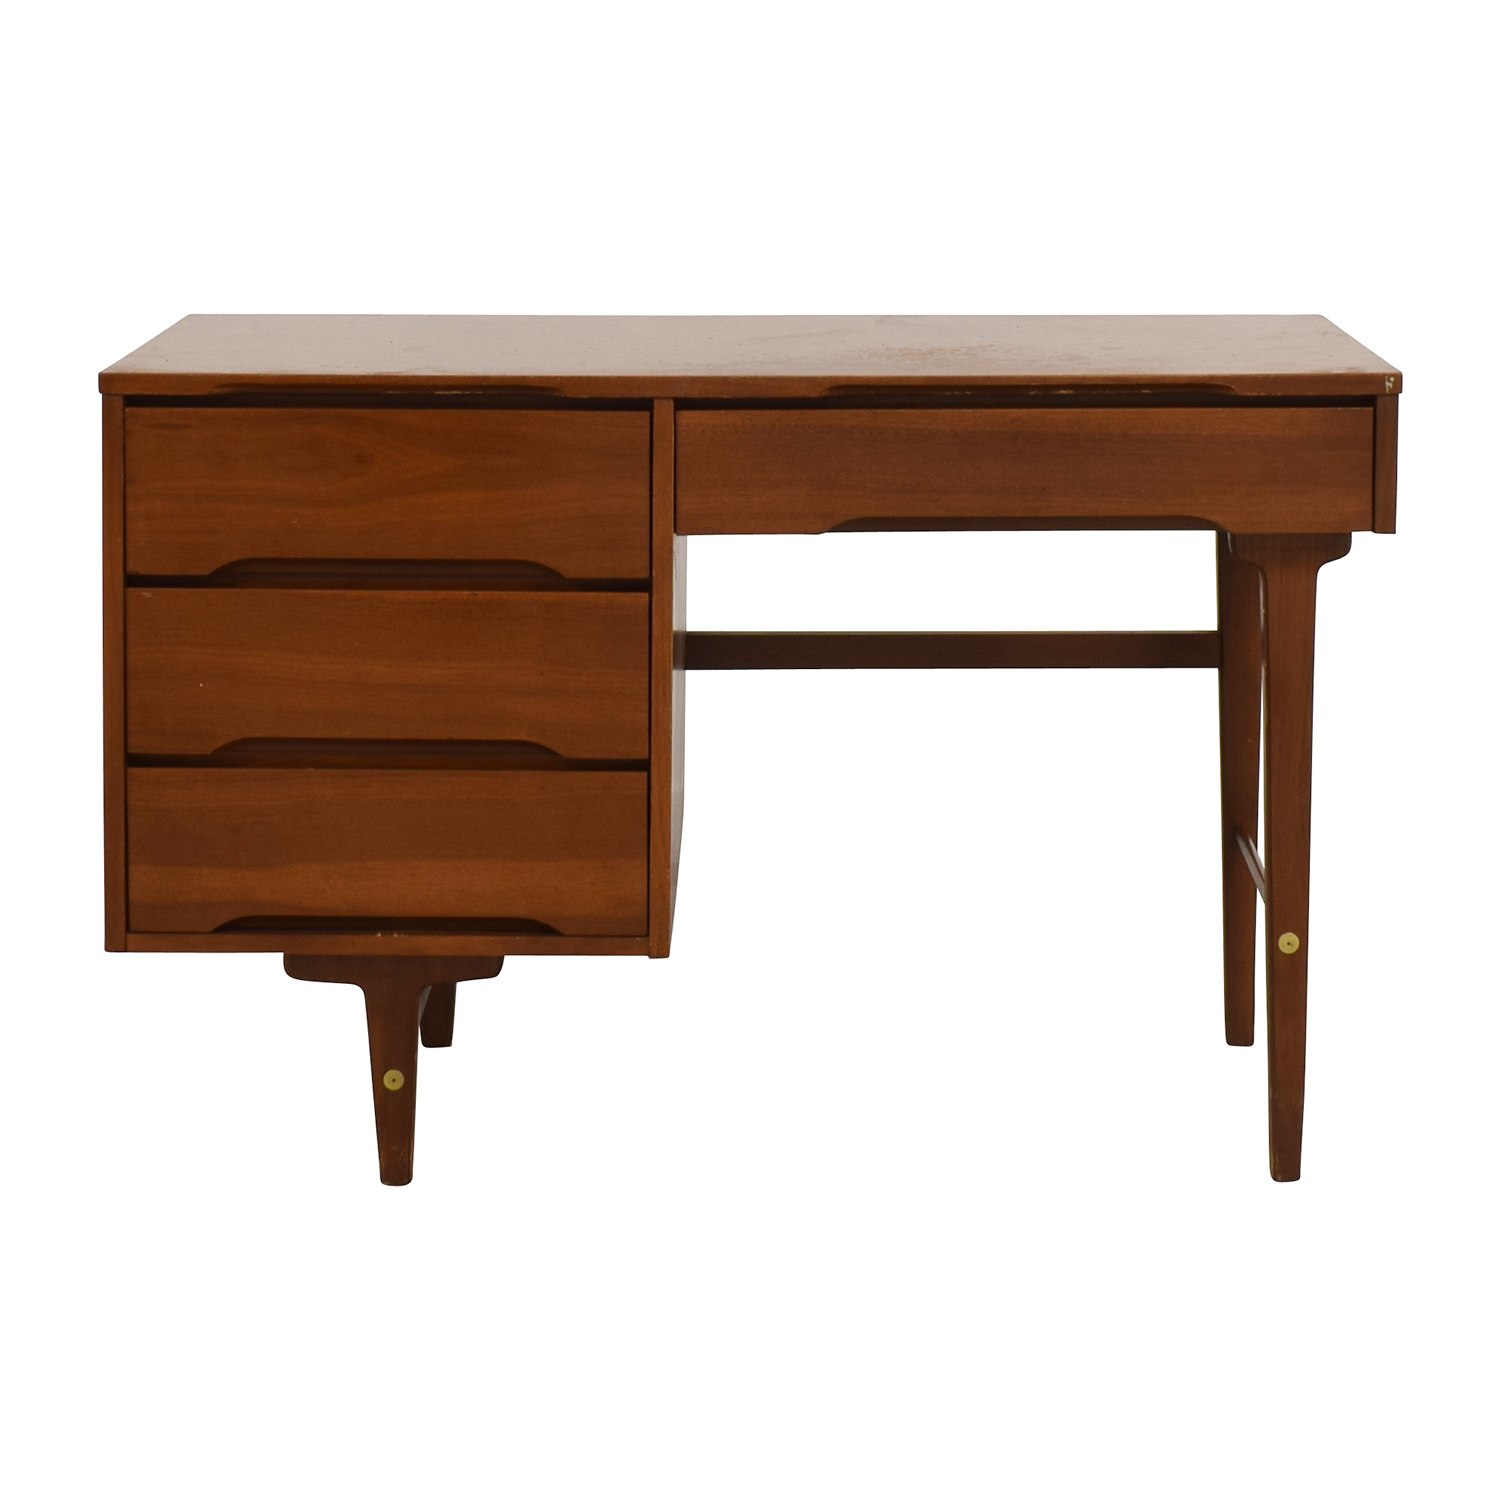 Solid Wood Four-Drawer Desk second hand